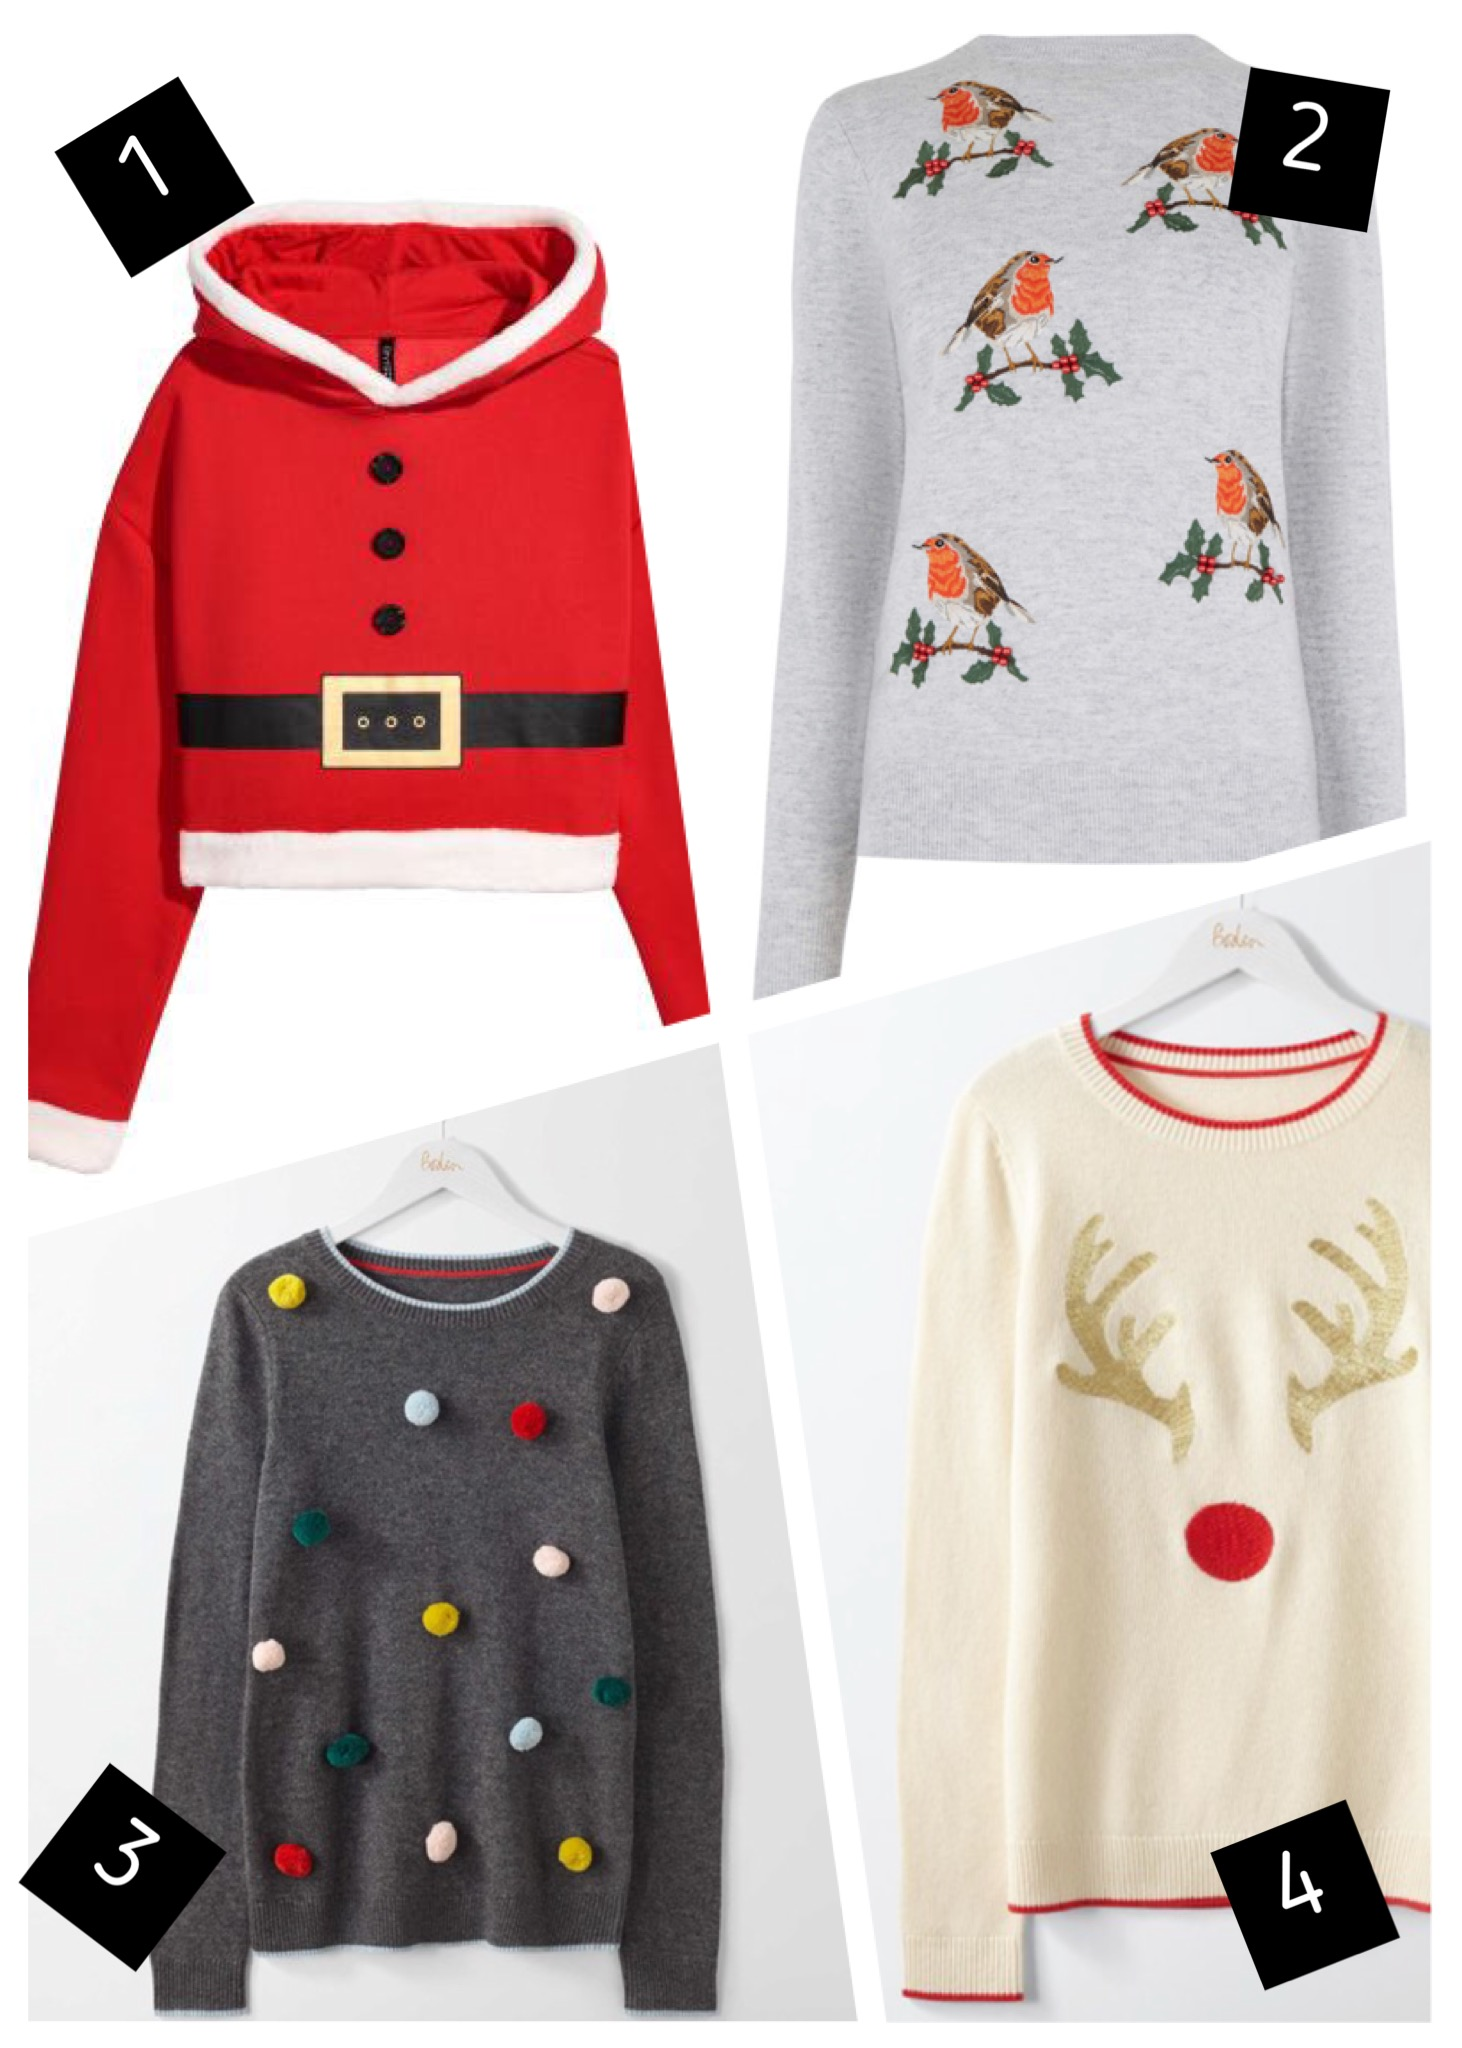 TOP CHRISTMAS JUMPERS FOR THE FAMILY